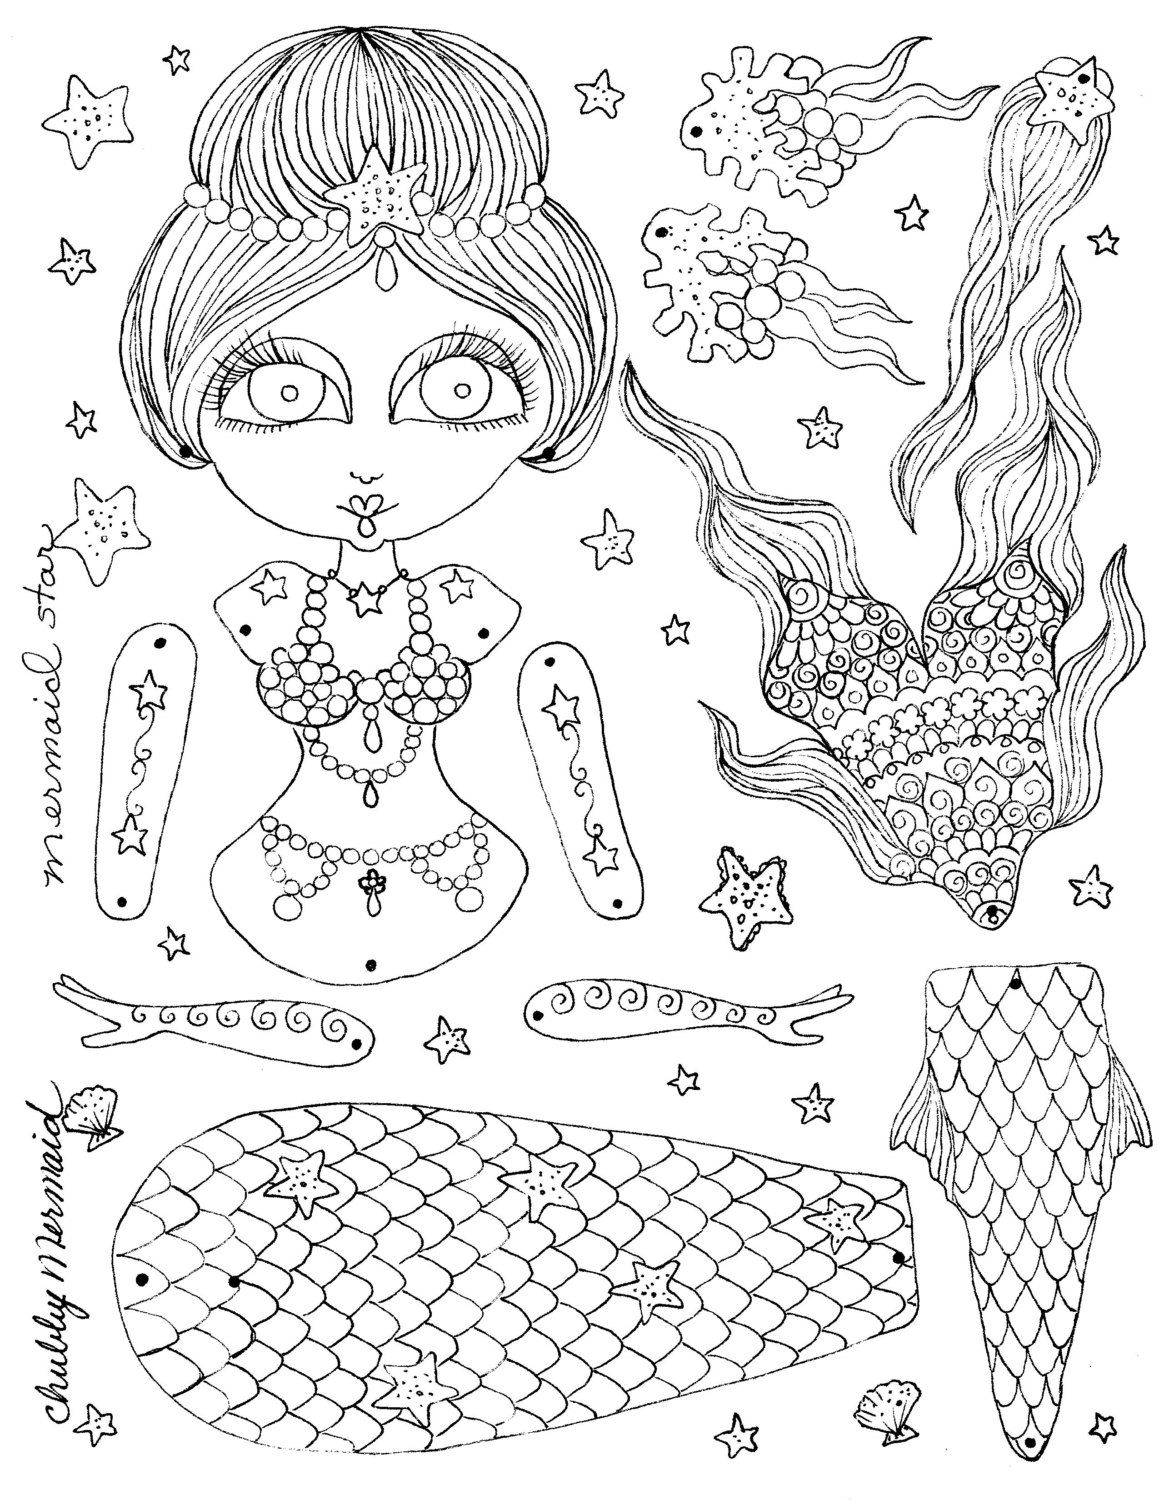 mermaid family coloring pages 101 little mermaid coloring pages nov 2020 and ariel coloring pages mermaid family